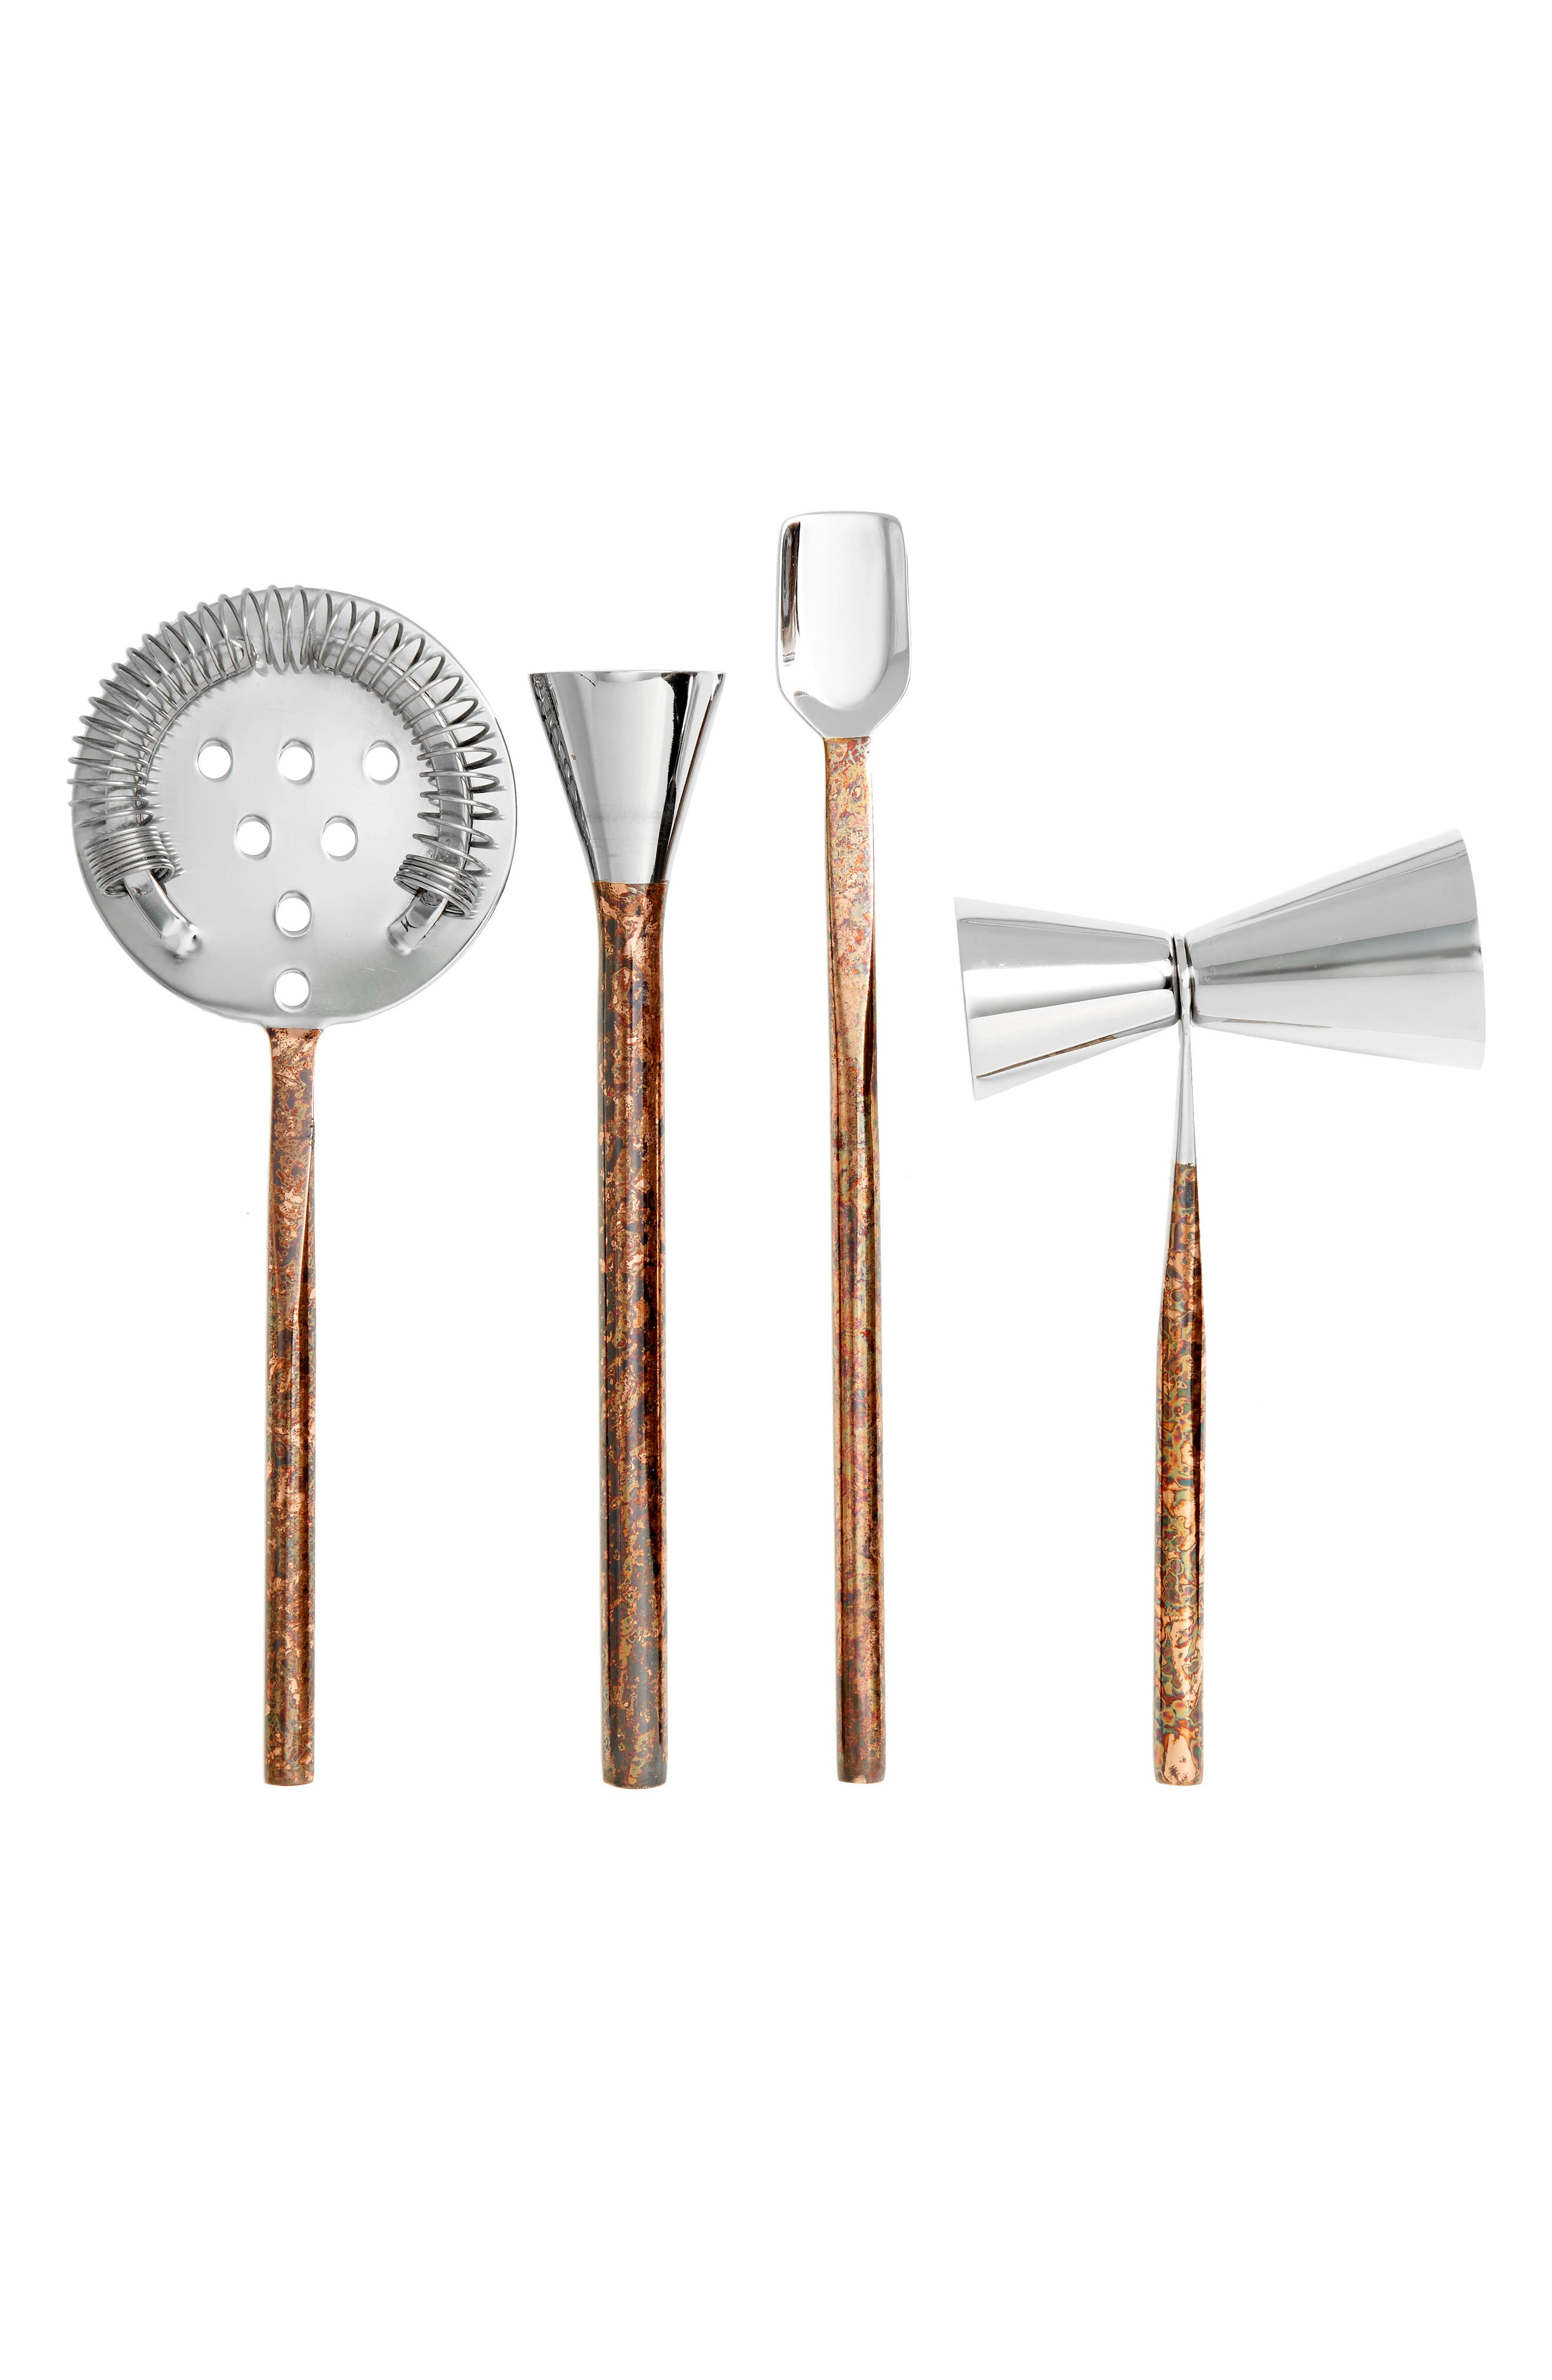 4-Piece Distressed Copper & Stainless Steel Bar Set,                         Main,                         color, Brushed Copper